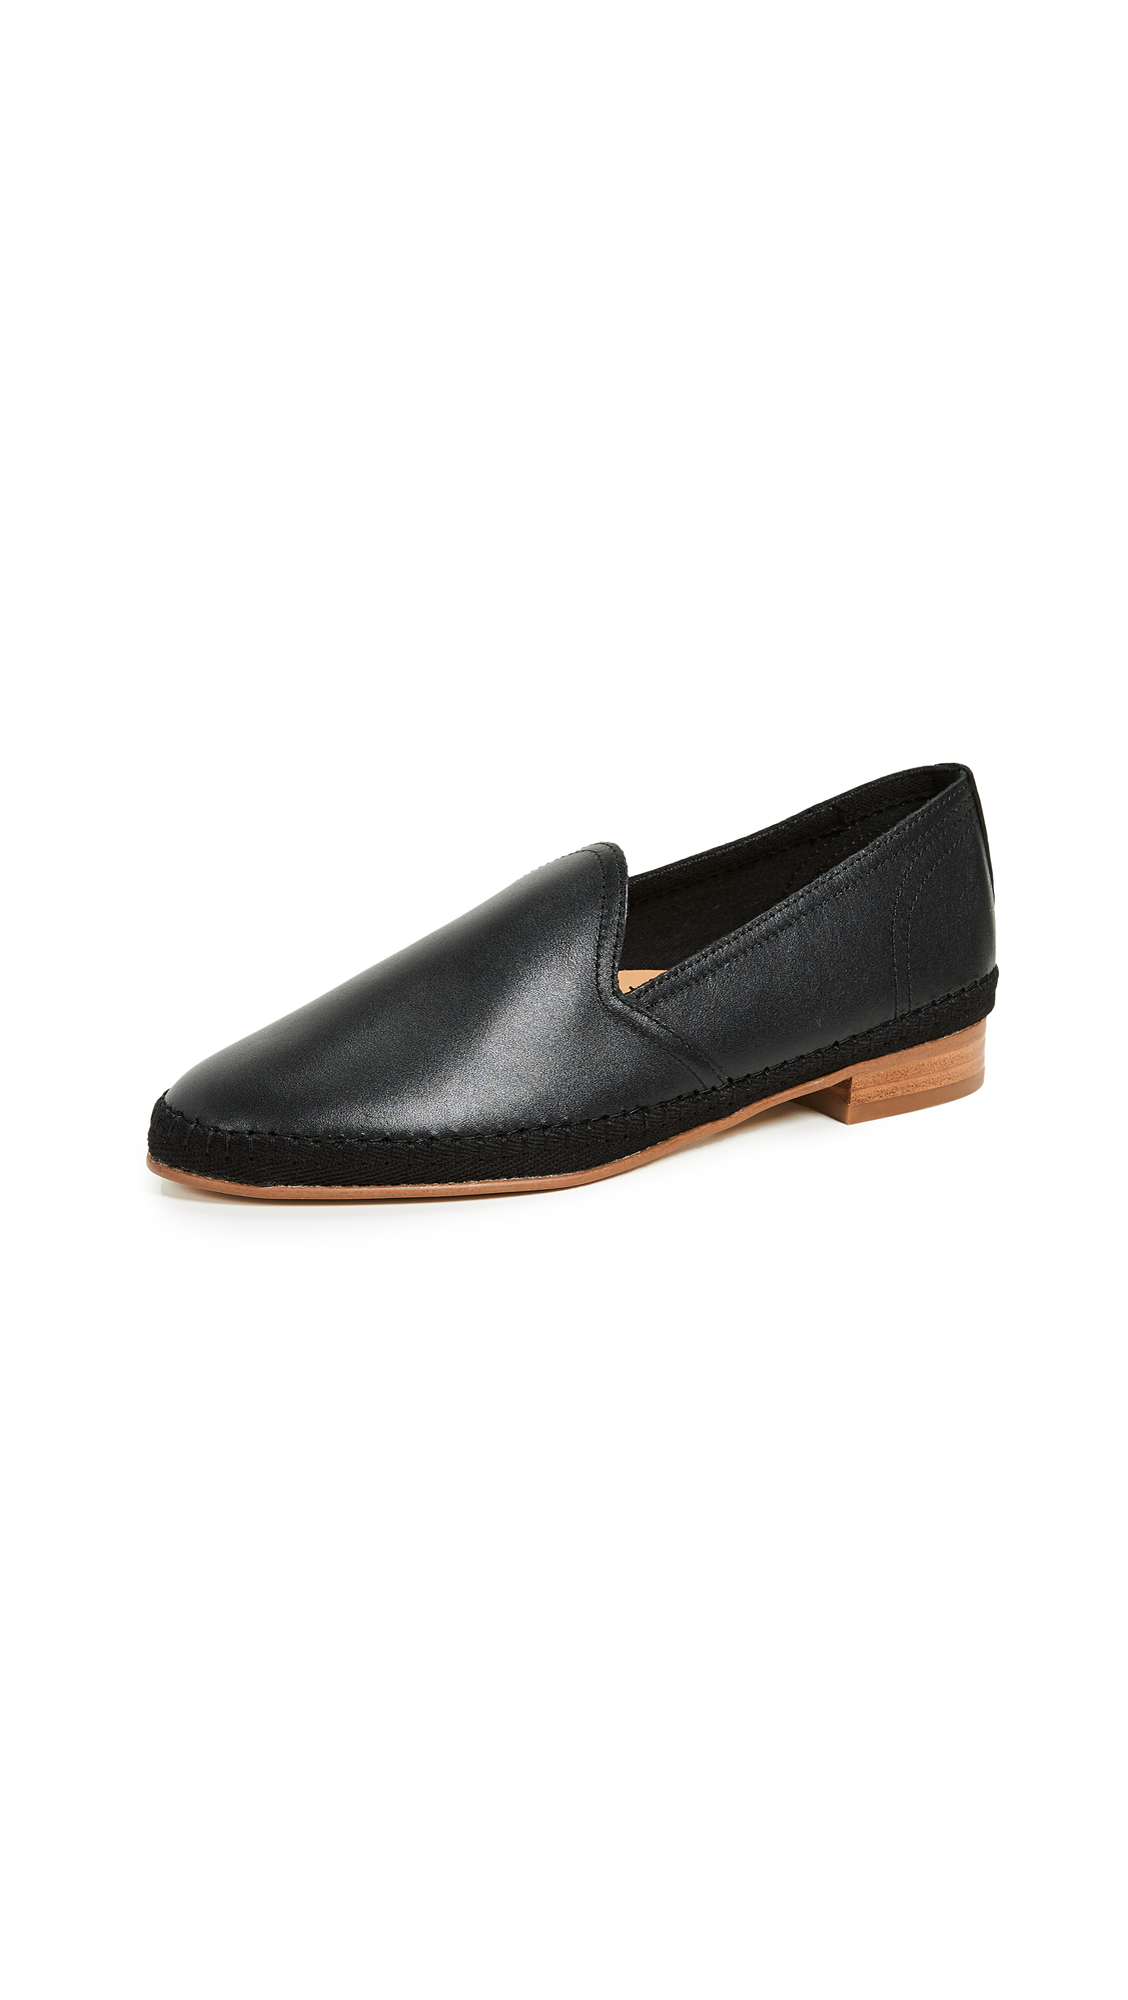 Soludos Venetian Loafers - Black